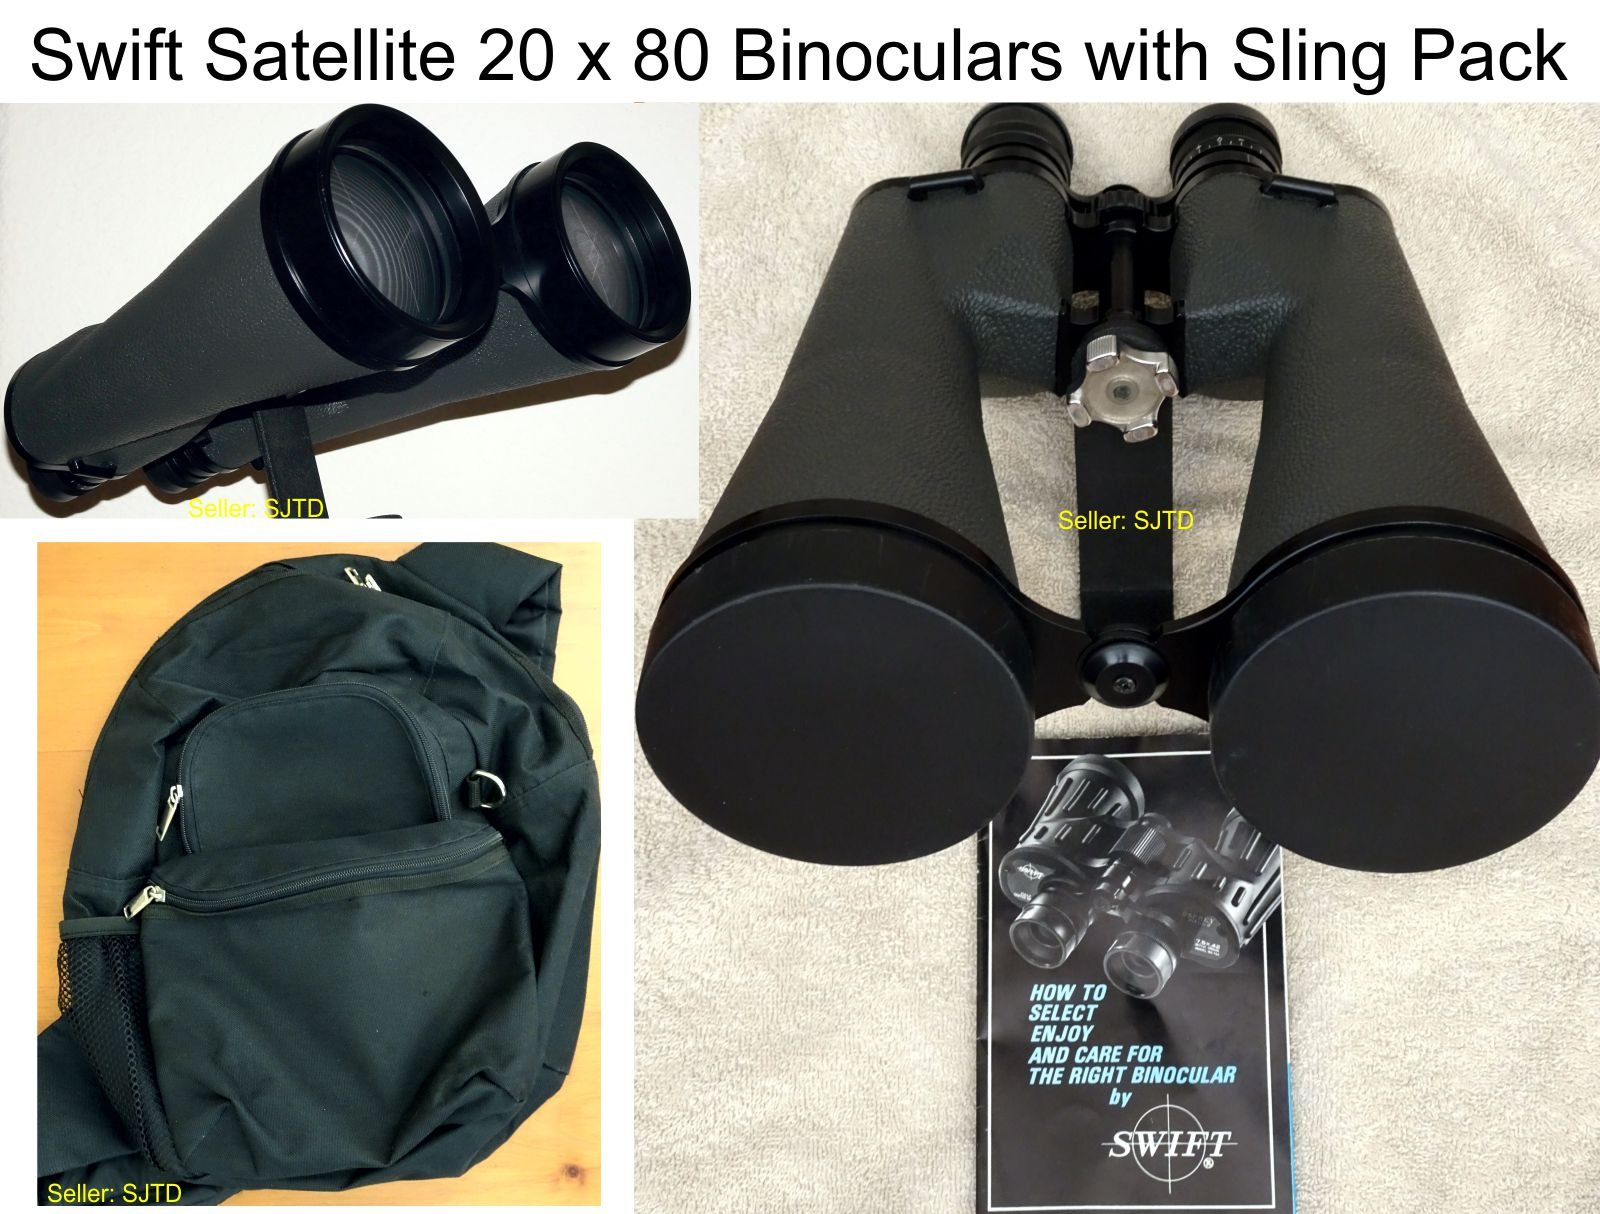 Swift Satellite 20 x 80 Binoculars with Sling Pack - EXCELLENT!